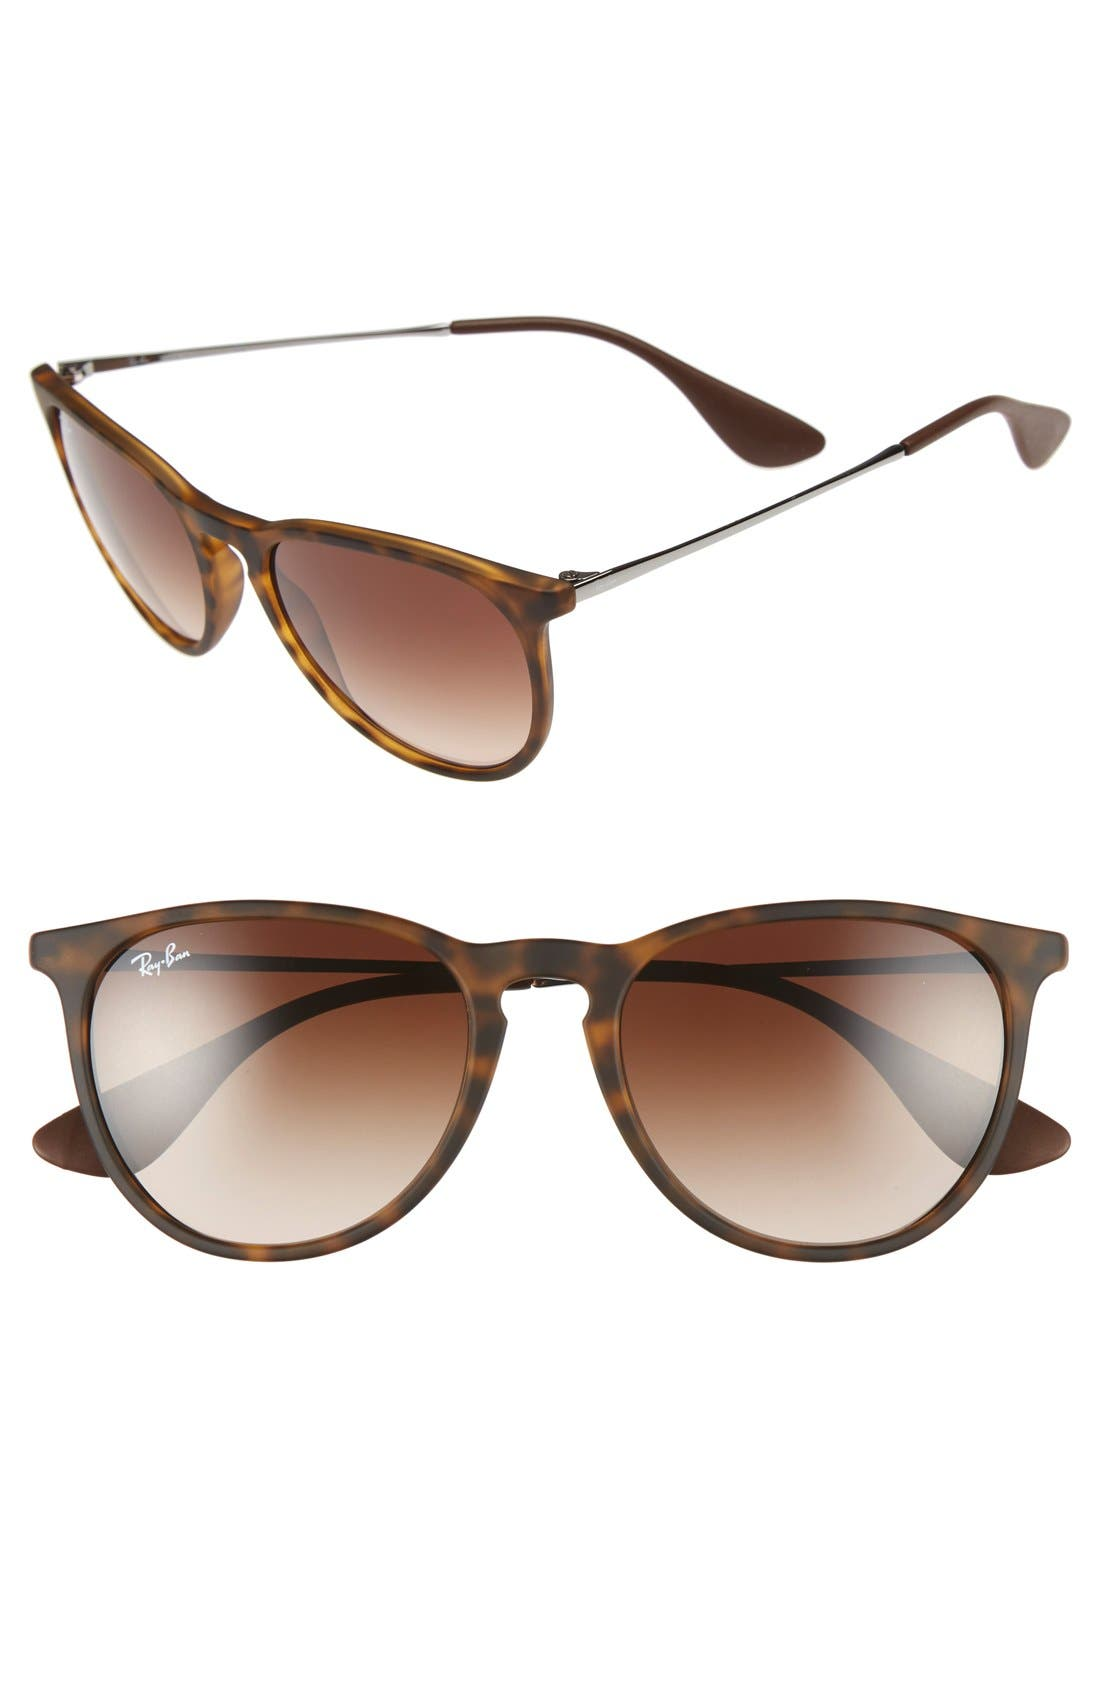 54mm Keyhole Sunglasses,                         Main,                         color, Matte Havana